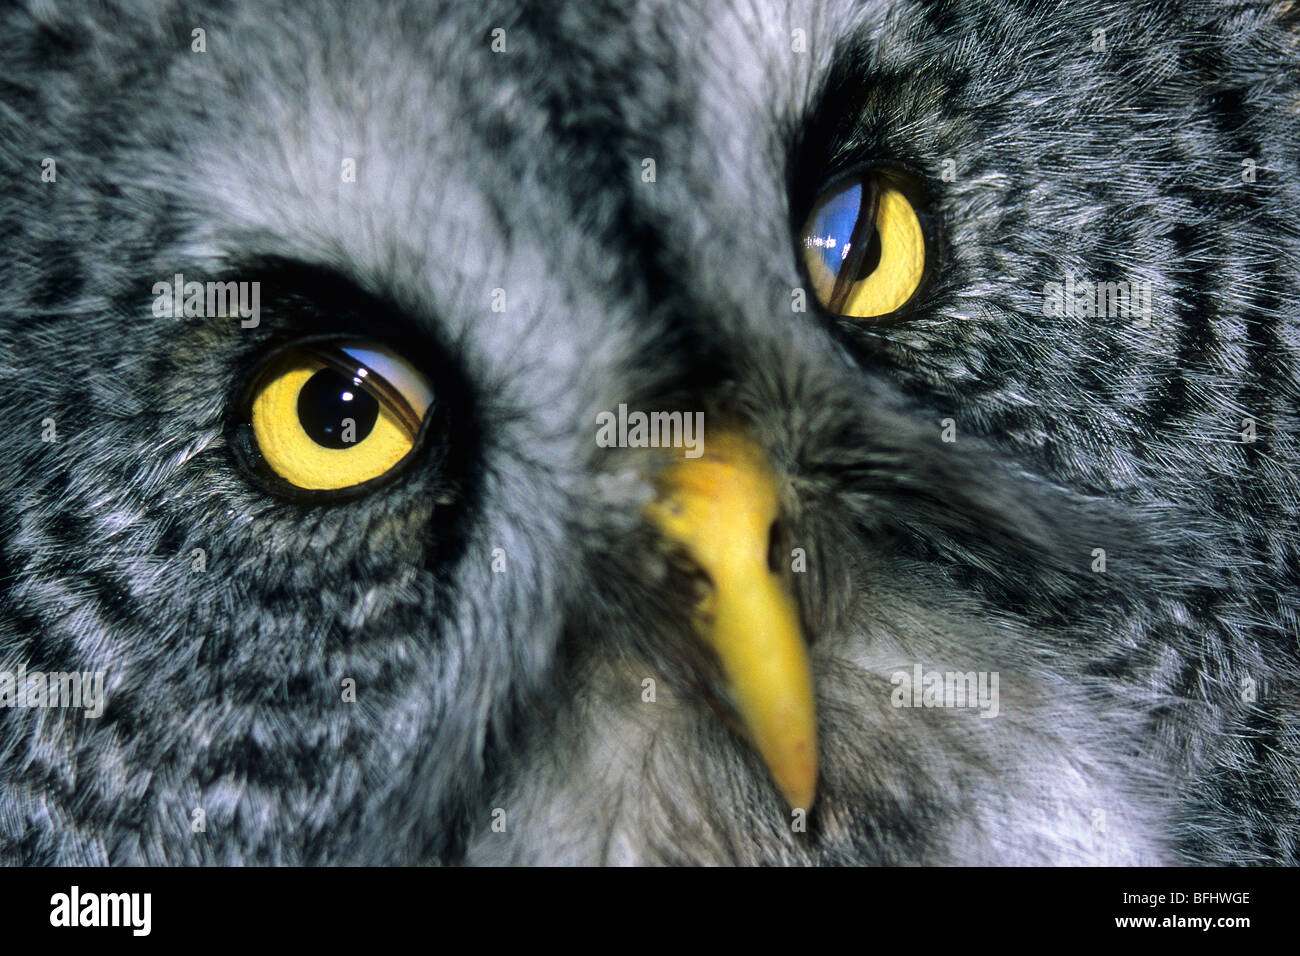 Nictitating membranes visible in a great gray owl (Strix nebulosa), northern Alberta, Canada - Stock Image